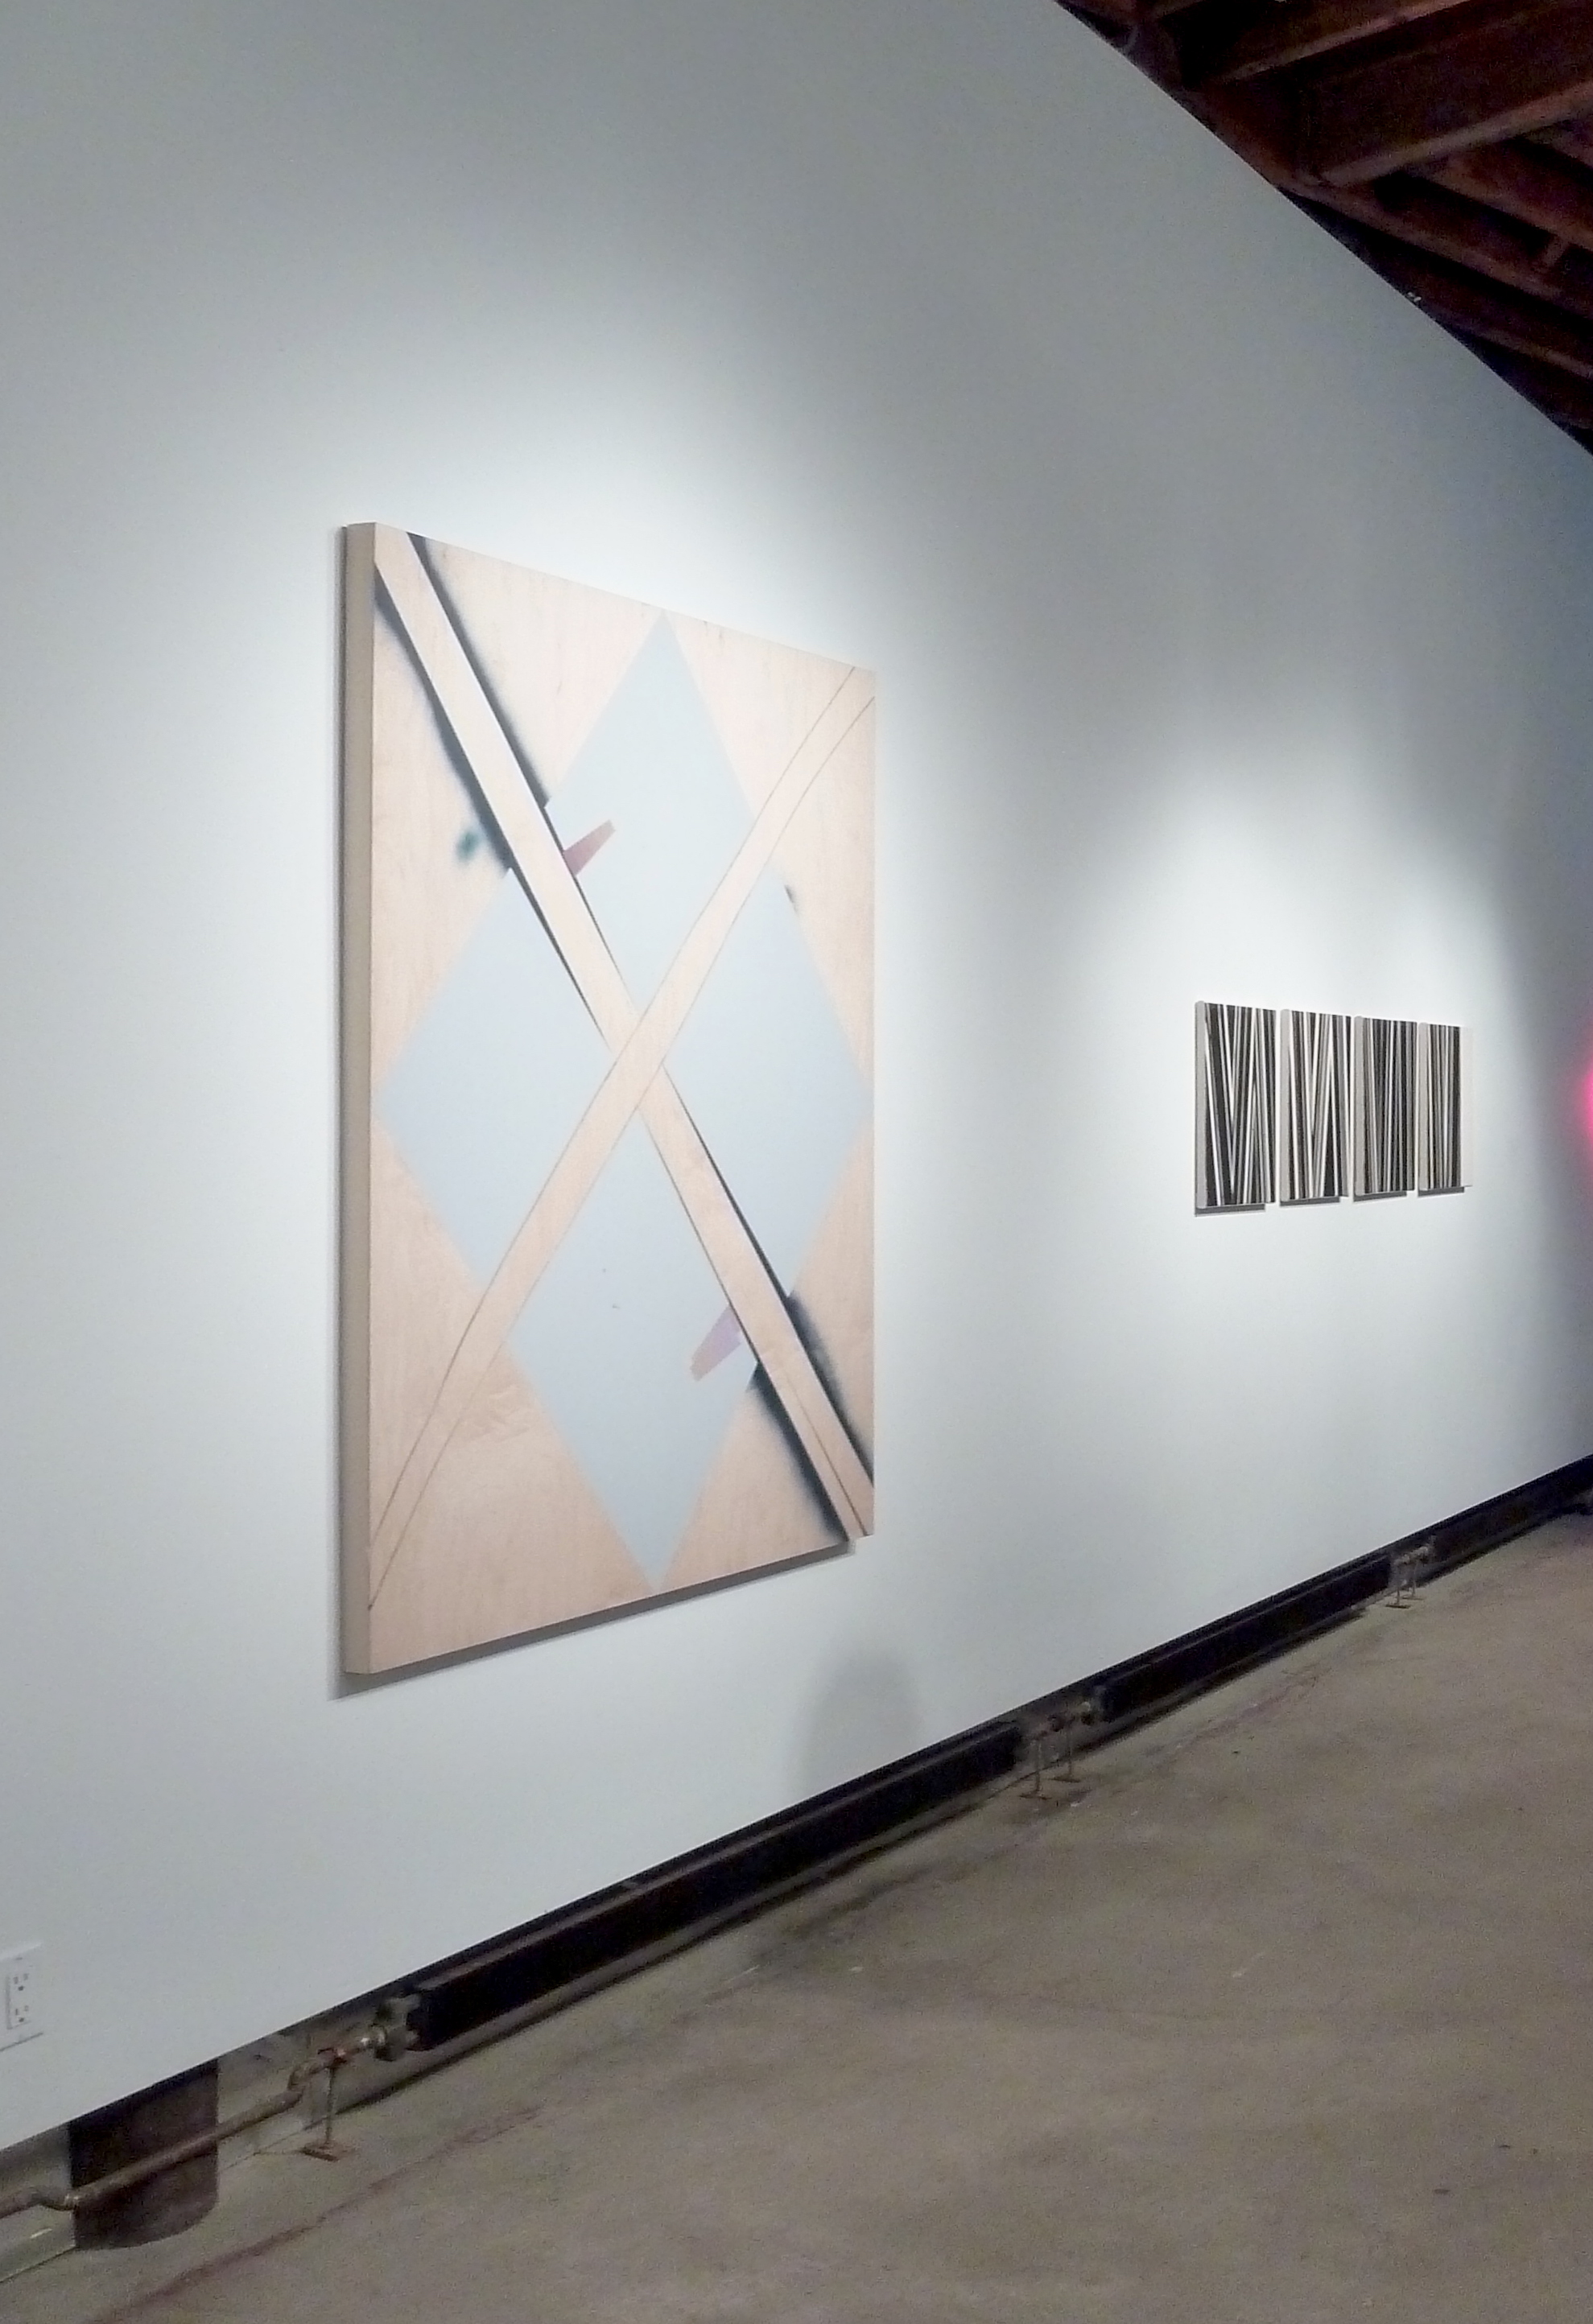 Rafael Vega (left), David Rhodes (right).  Signature Works , Guided by Invoices Gallery, New York, NY. 2013. Photo: Rafael Vega